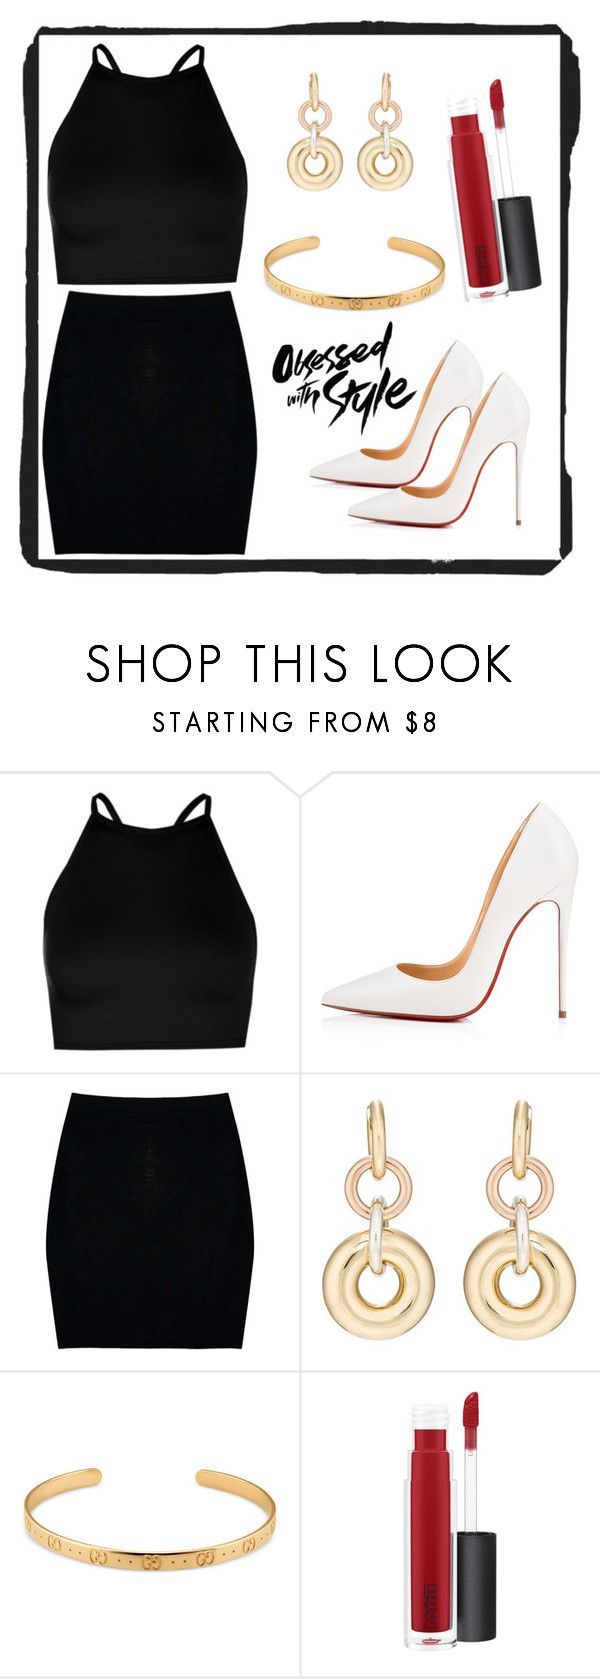 """Untitled #205"" by electraz on Polyvore featuring Boohoo, Christian Louboutin, SPINELLI KILCOLLIN, Gucci and MAC Cosmetics"